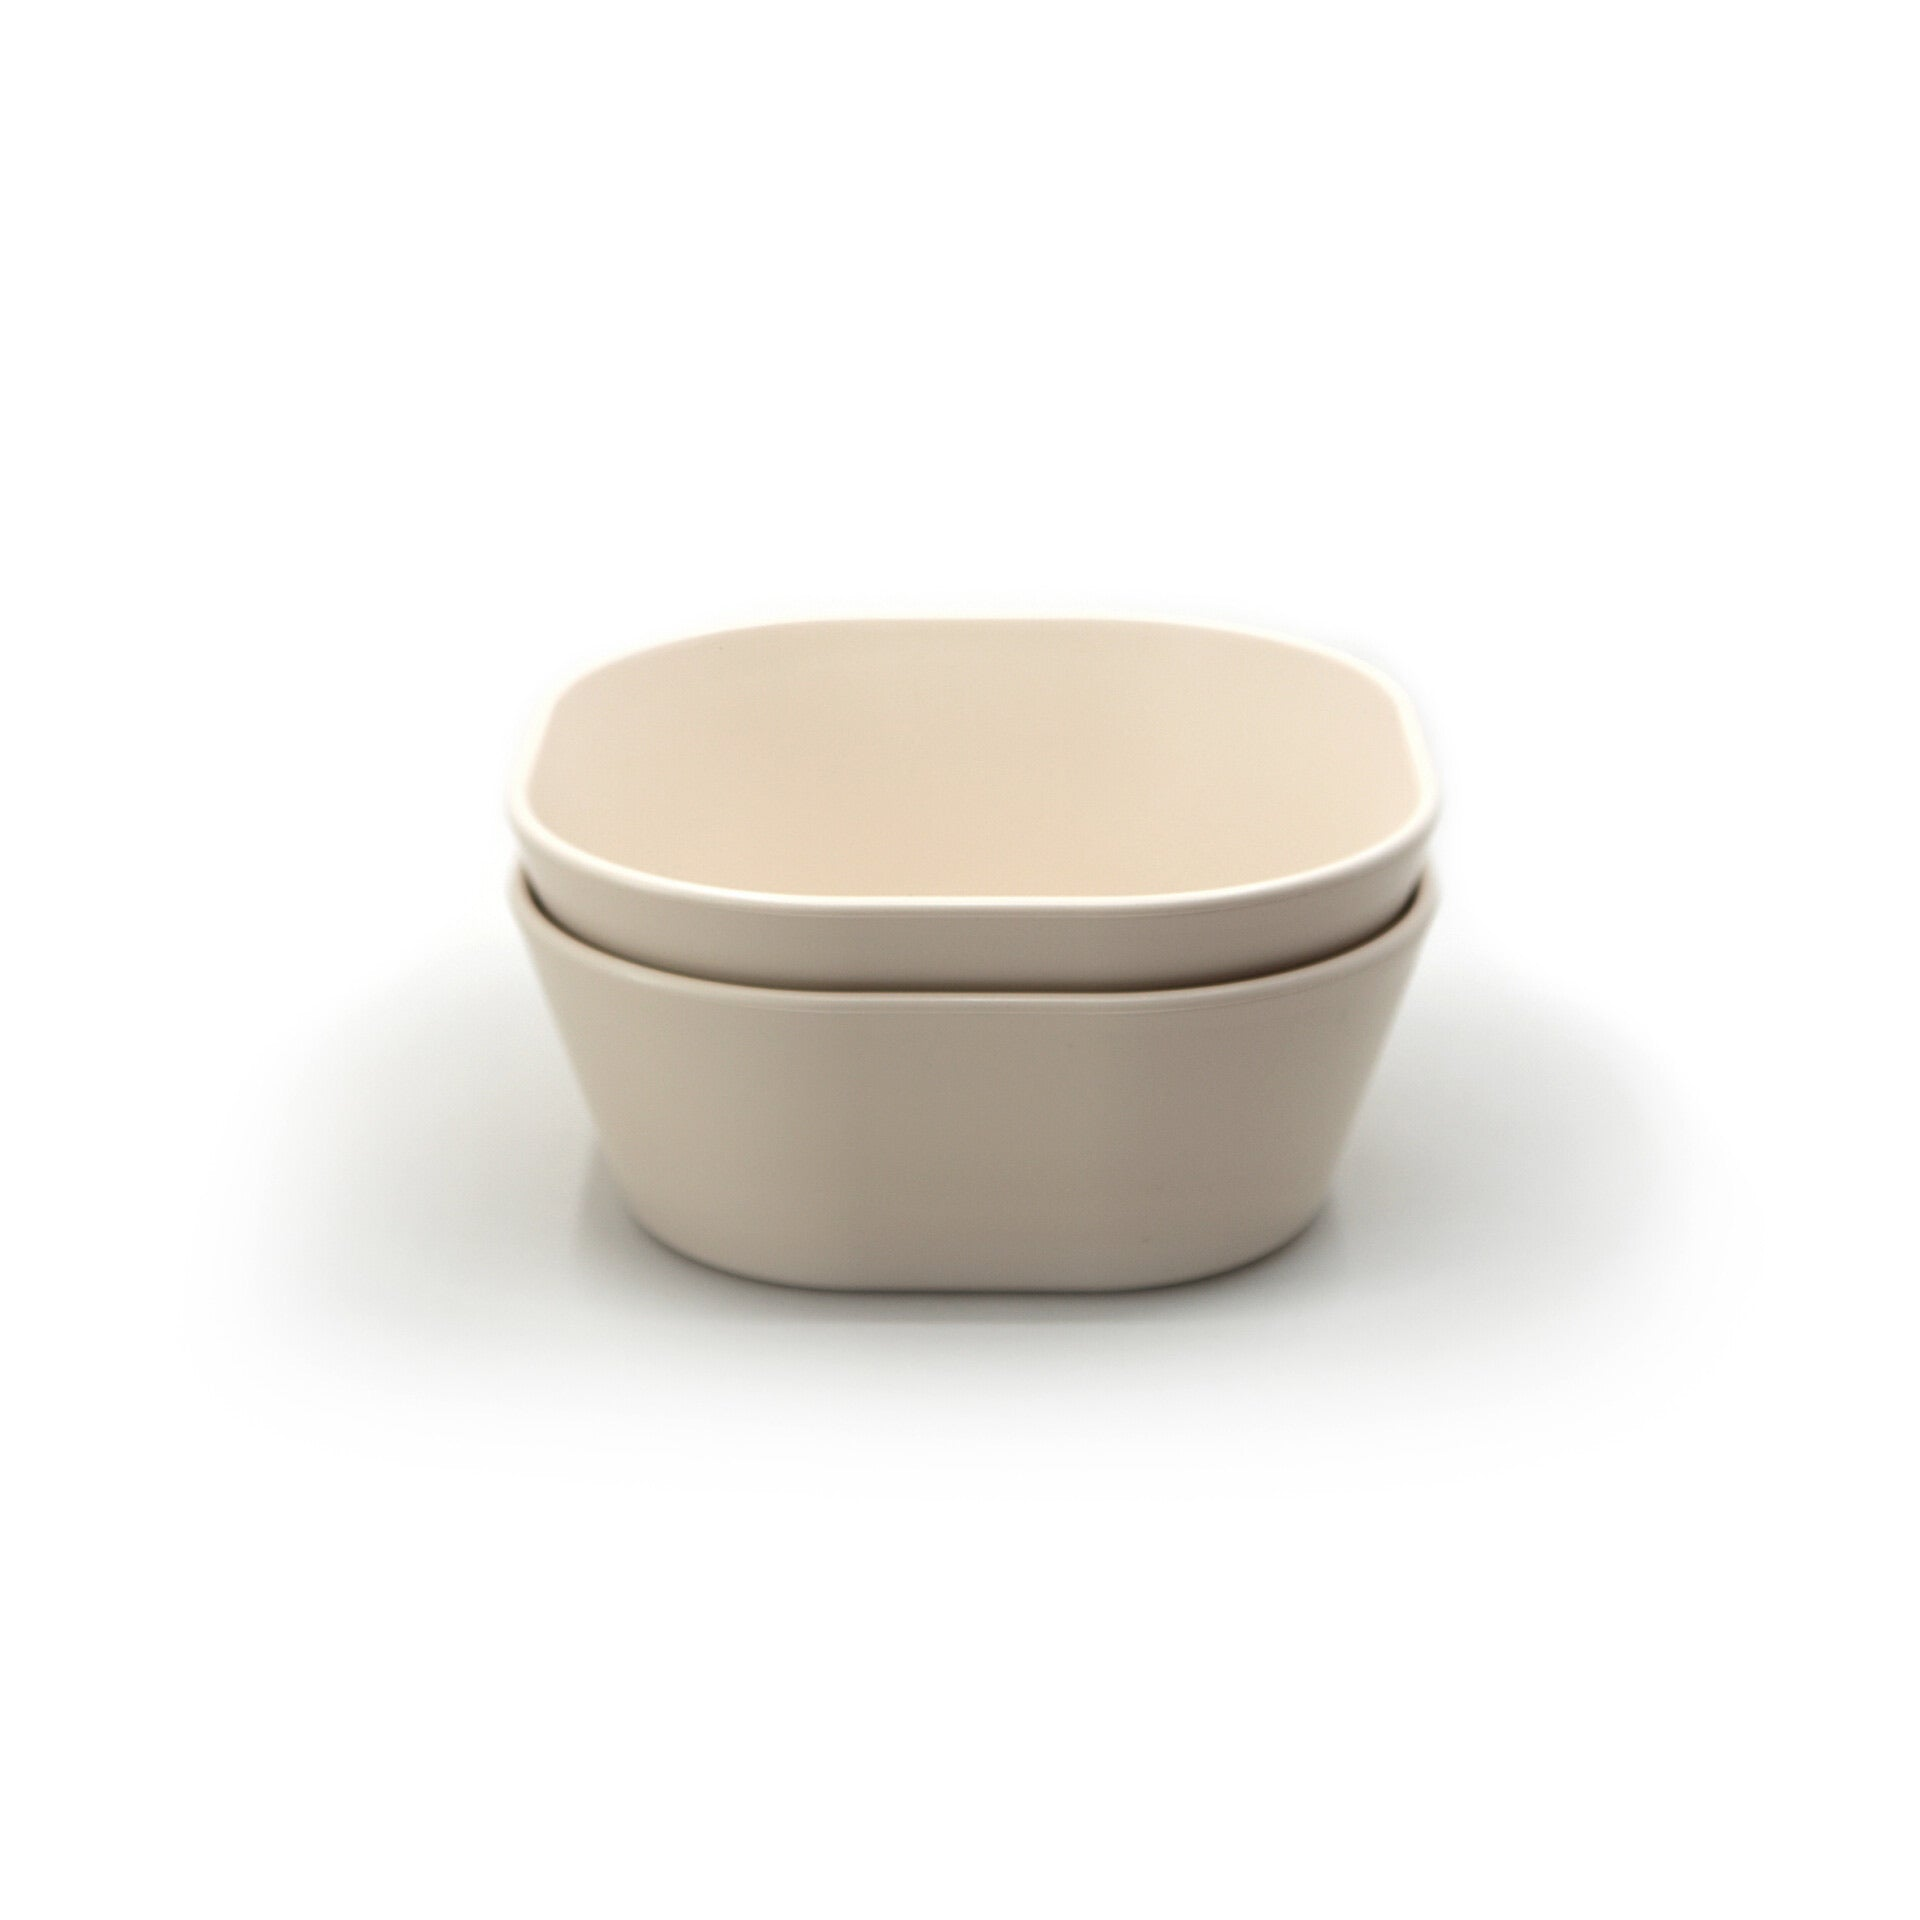 Square Dinnerware Bowl, Set of 2 (Ivory)